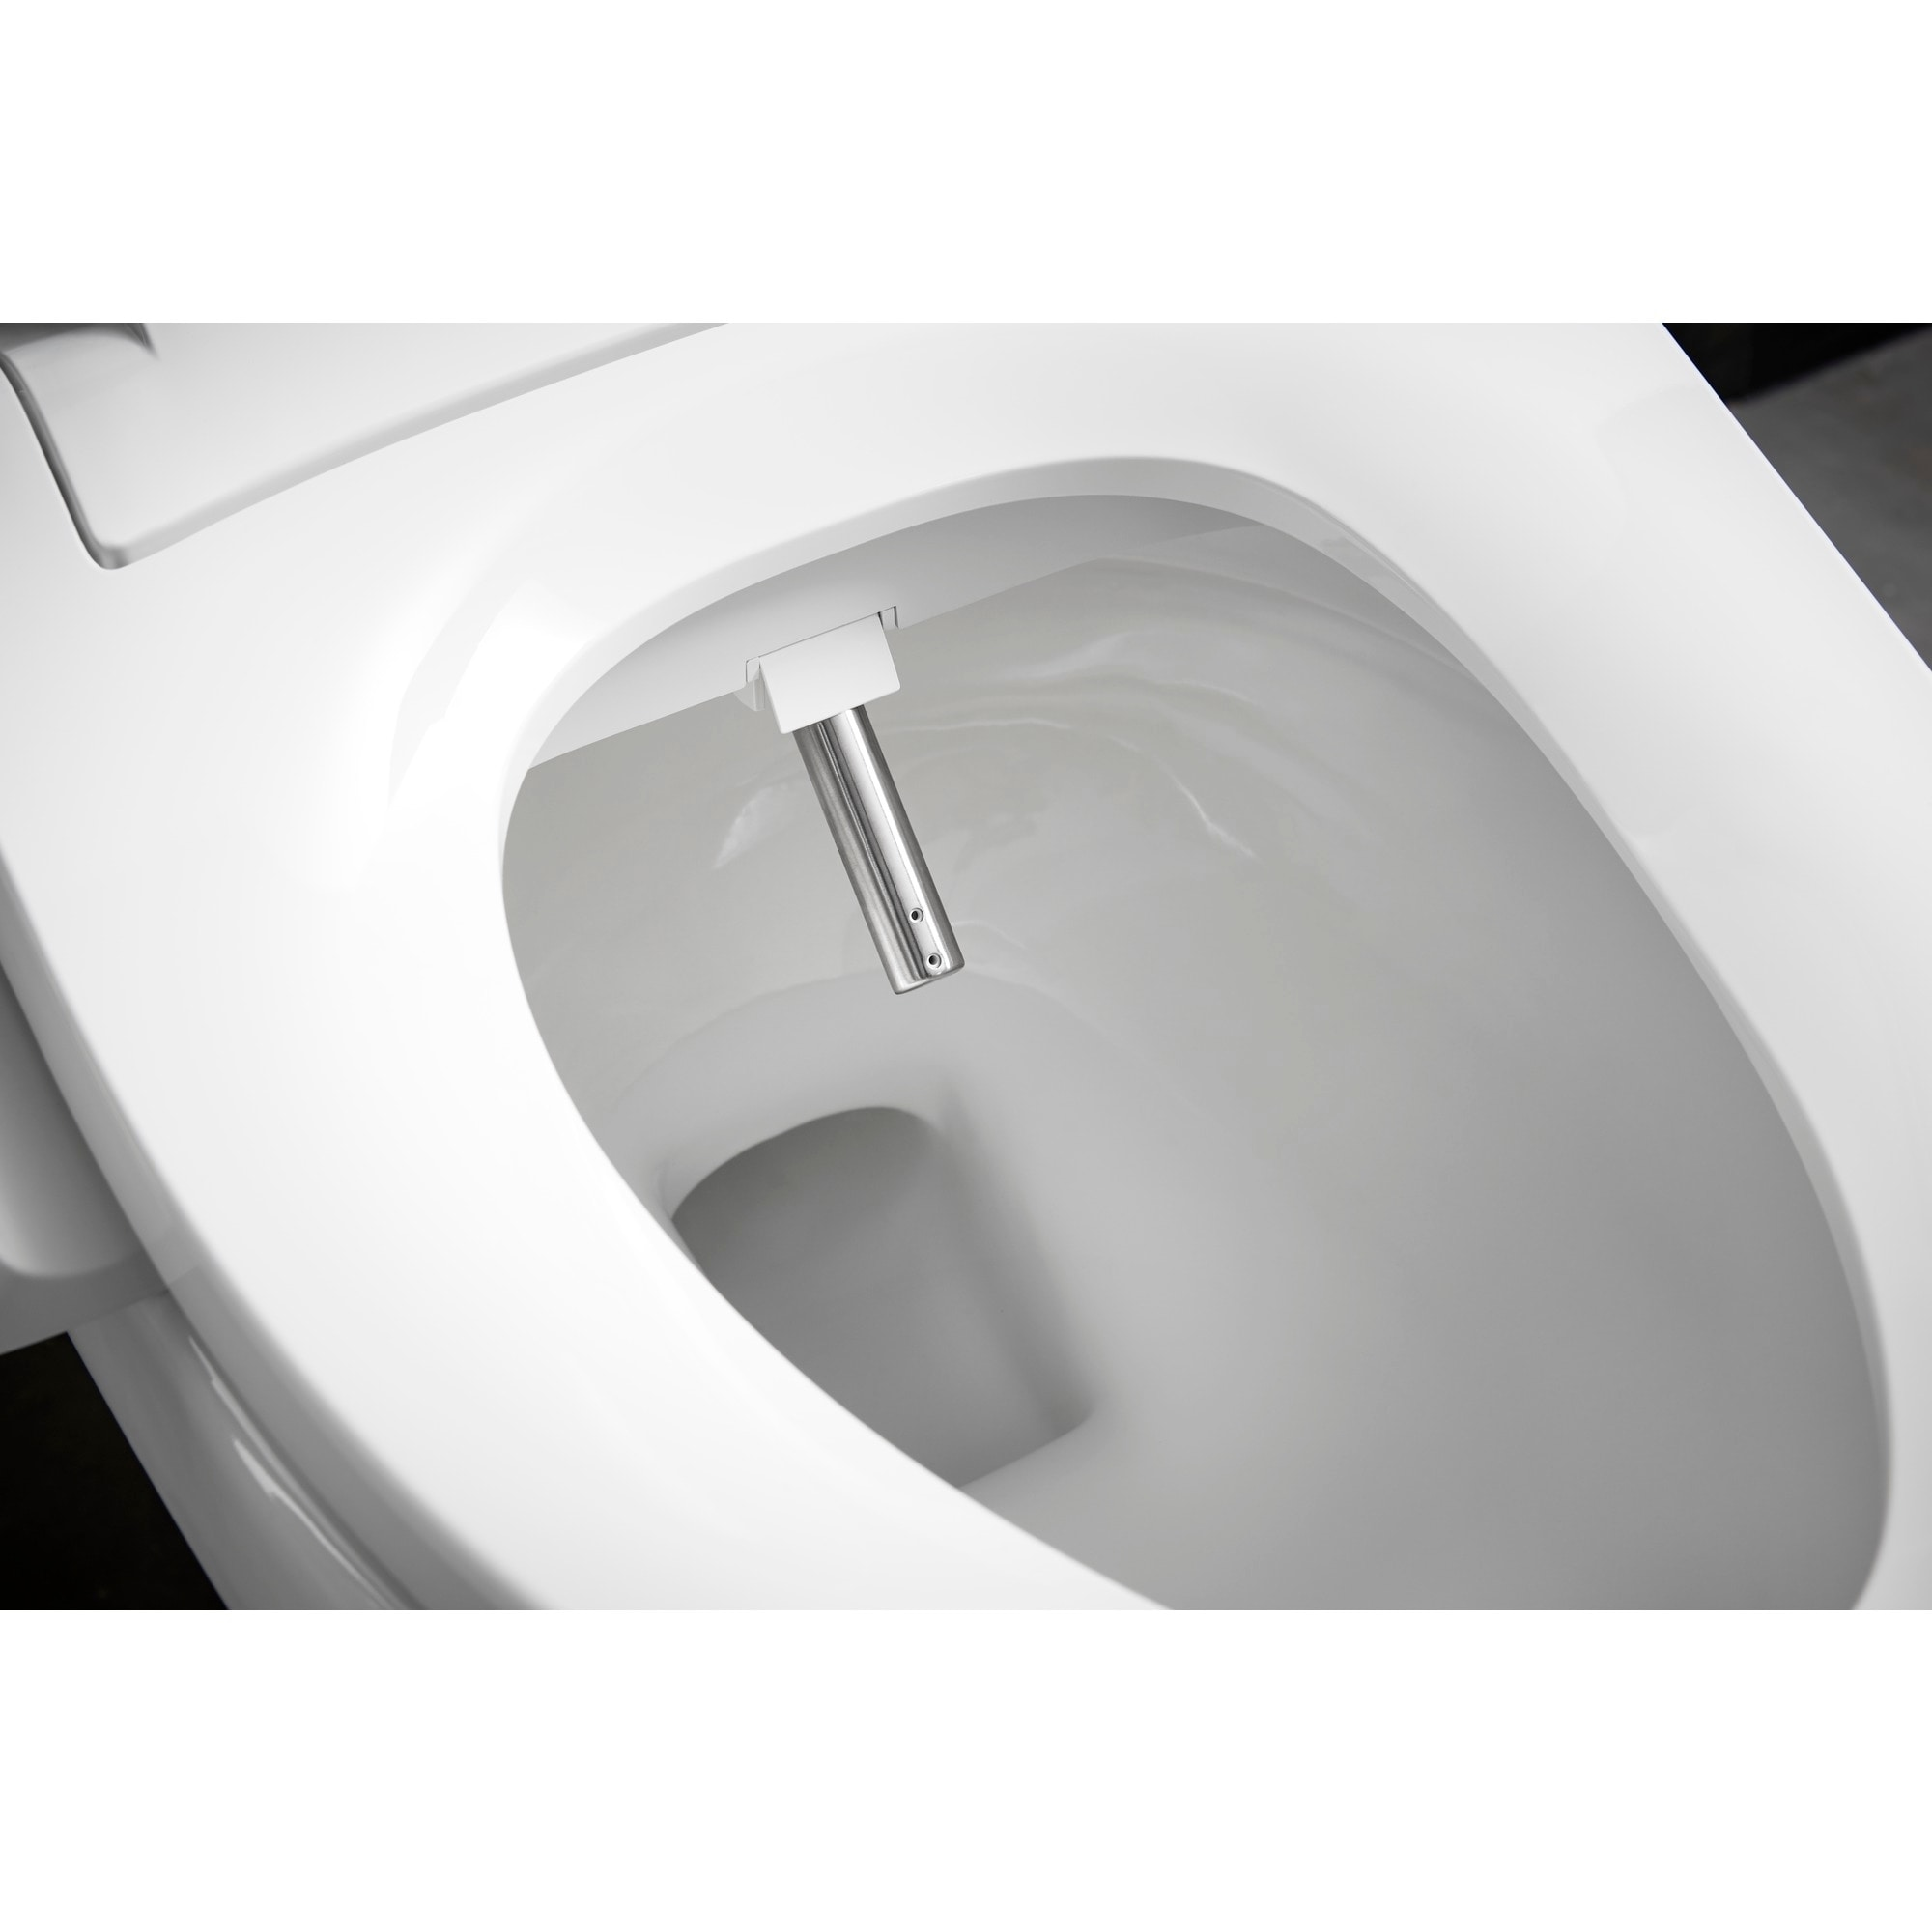 Superb Kohler C3 050 Cleansing Elongated Toilet Seat White Machost Co Dining Chair Design Ideas Machostcouk